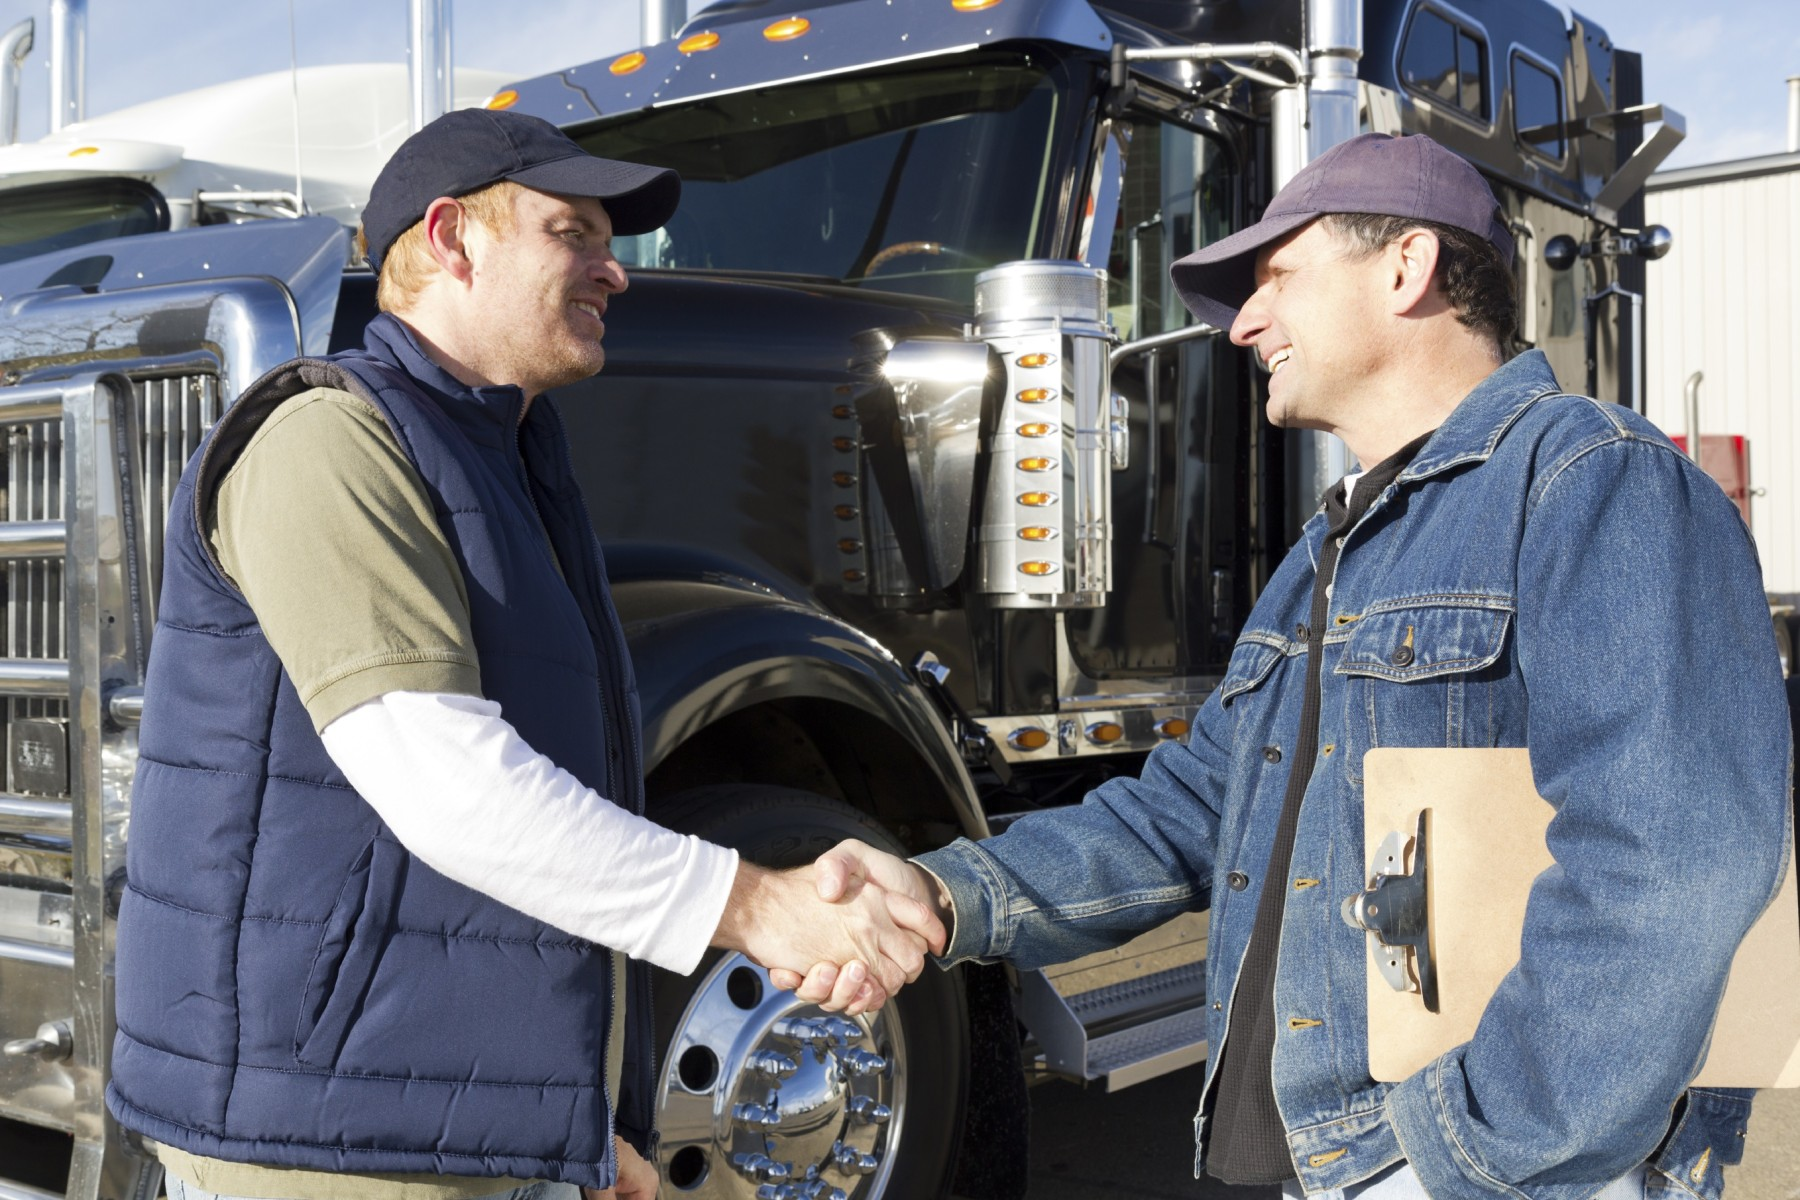 Carriers | Freight Shipping Services | Trucking Company